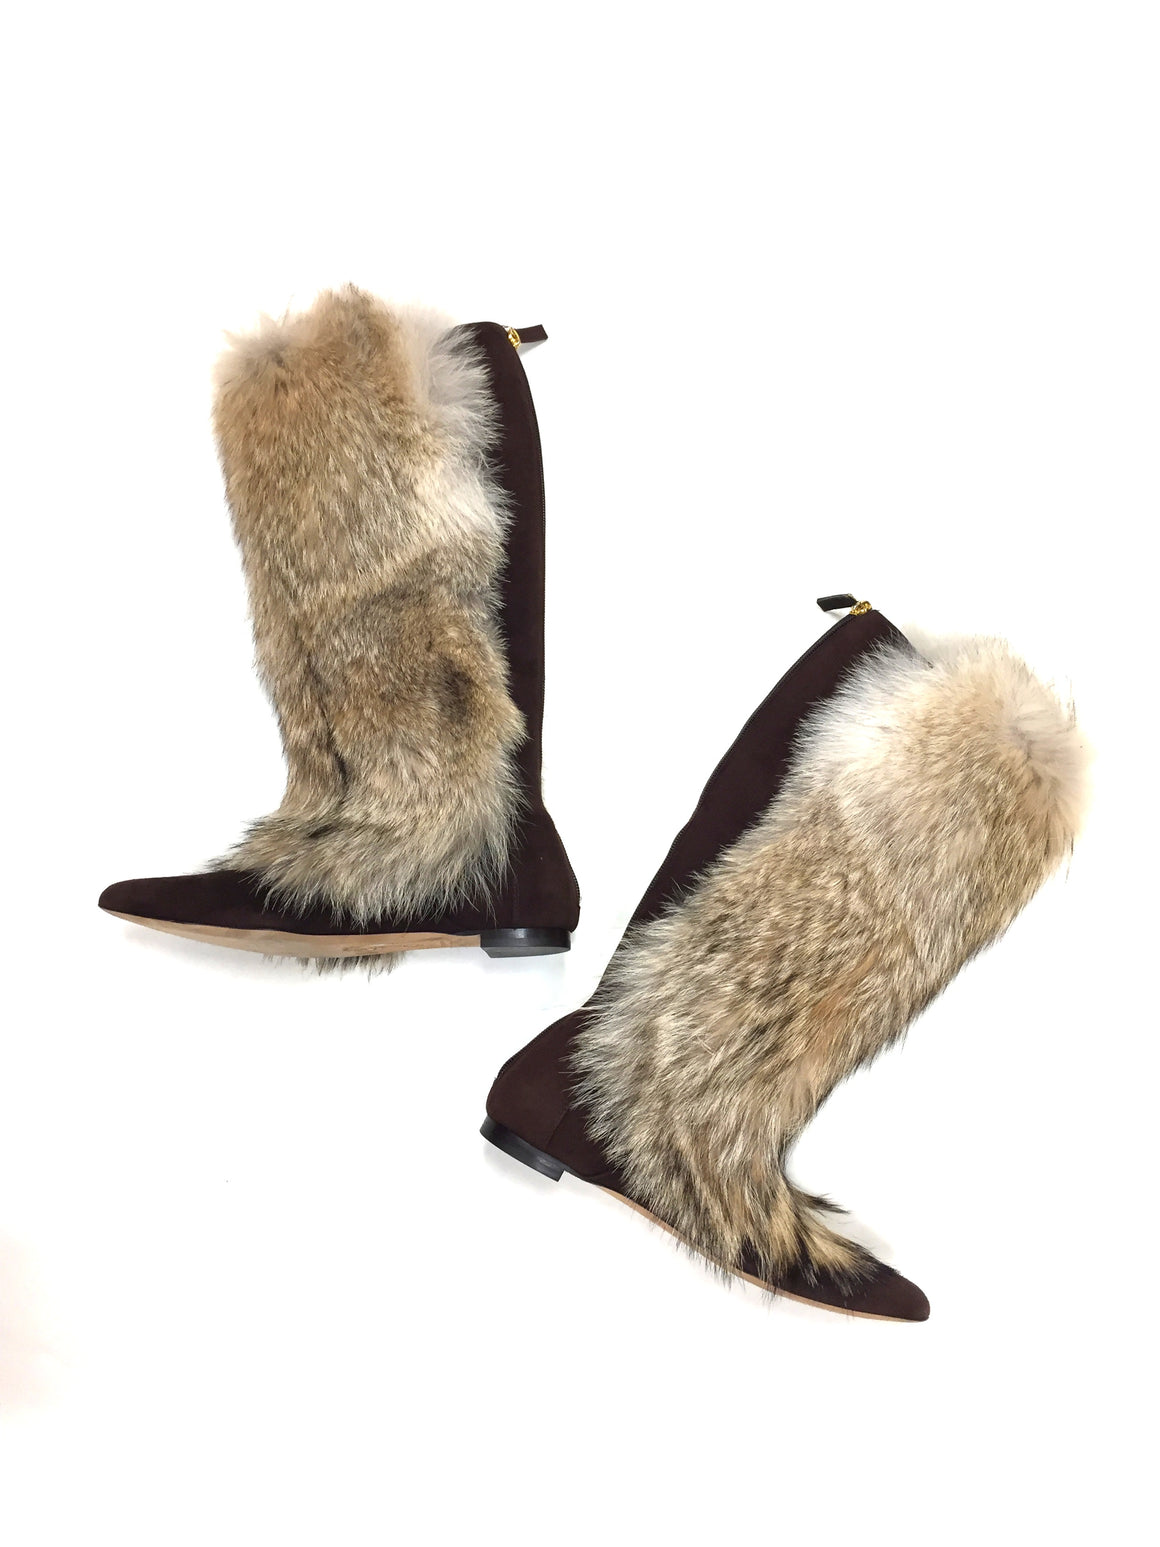 OSCAR DE LA RENTA Brown Suede Blonde Fox Fur Knee-High Flat Boots Size: 7.5M